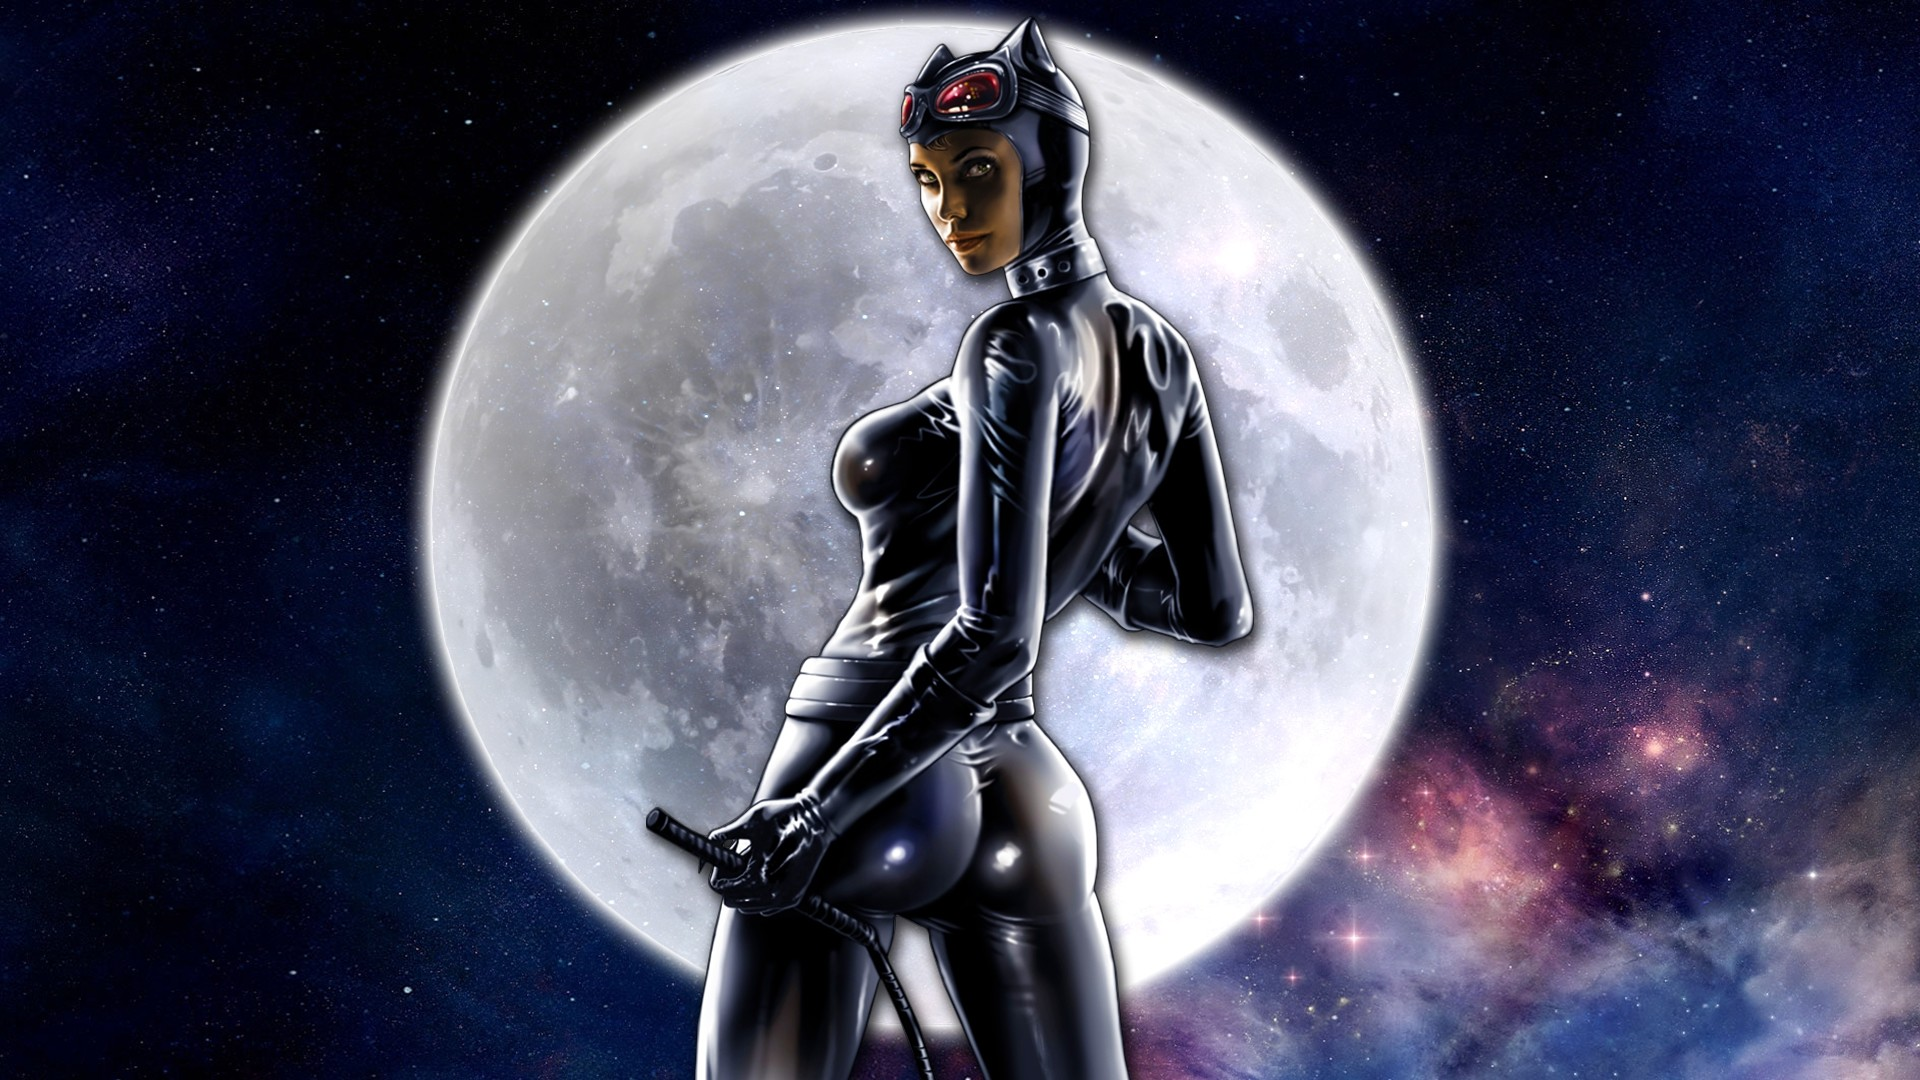 Catwoman high definition wallpapers · Catwoman photos